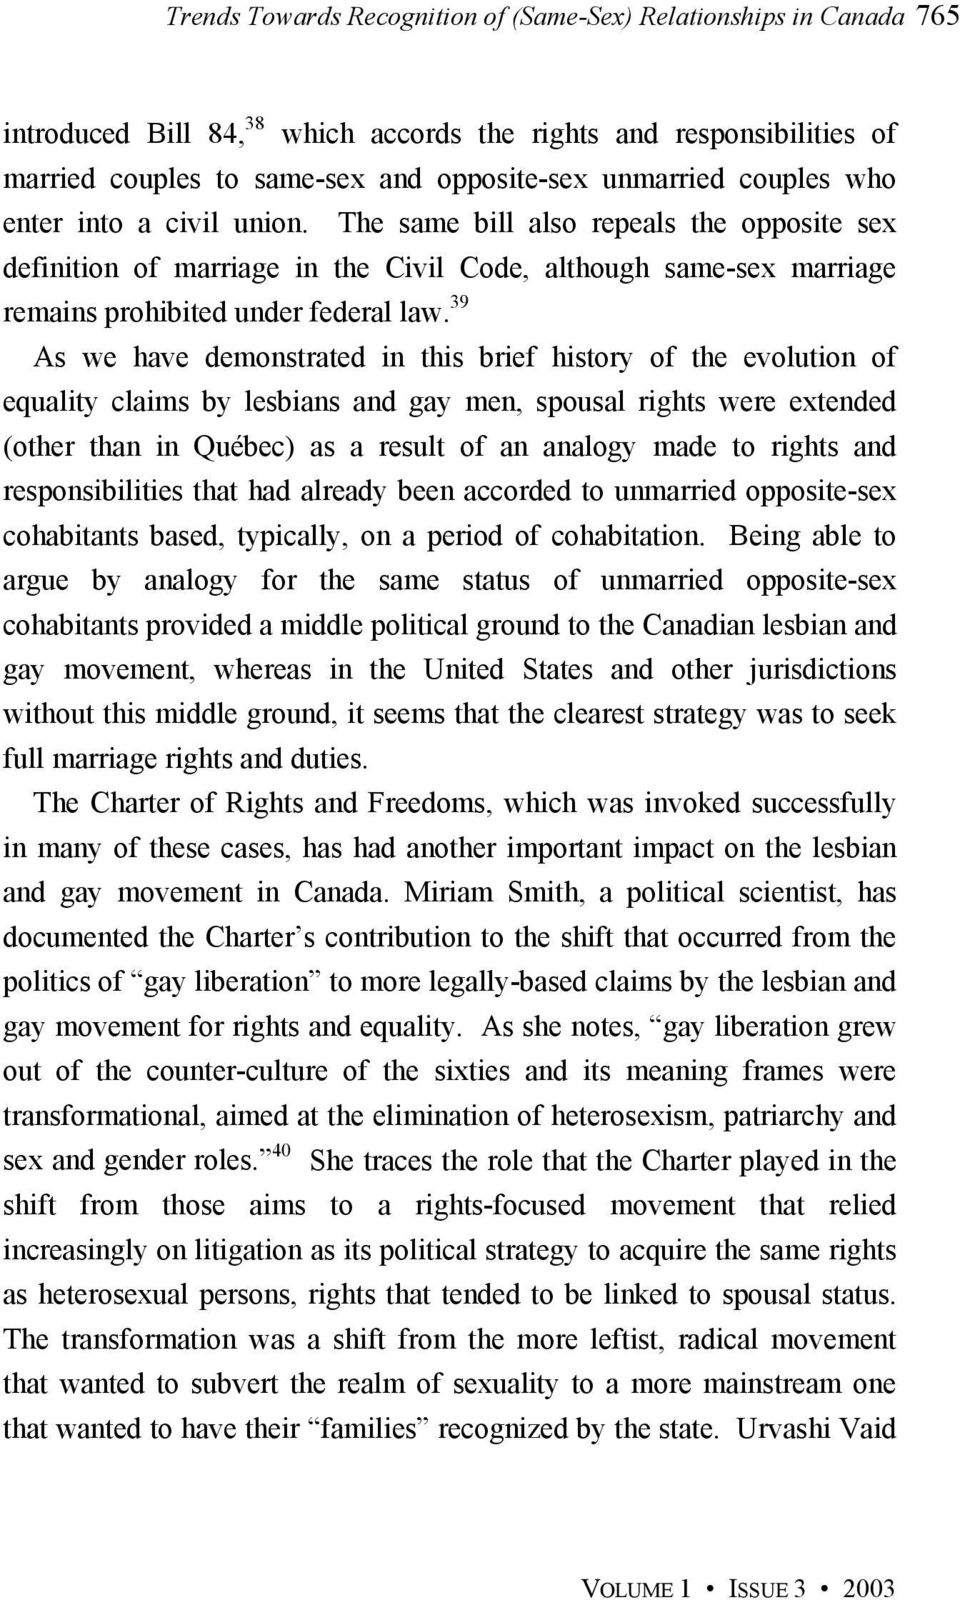 39 As we have demonstrated in this brief history of the evolution of equality claims by lesbians and gay men, spousal rights were extended (other than in Québec) as a result of an analogy made to